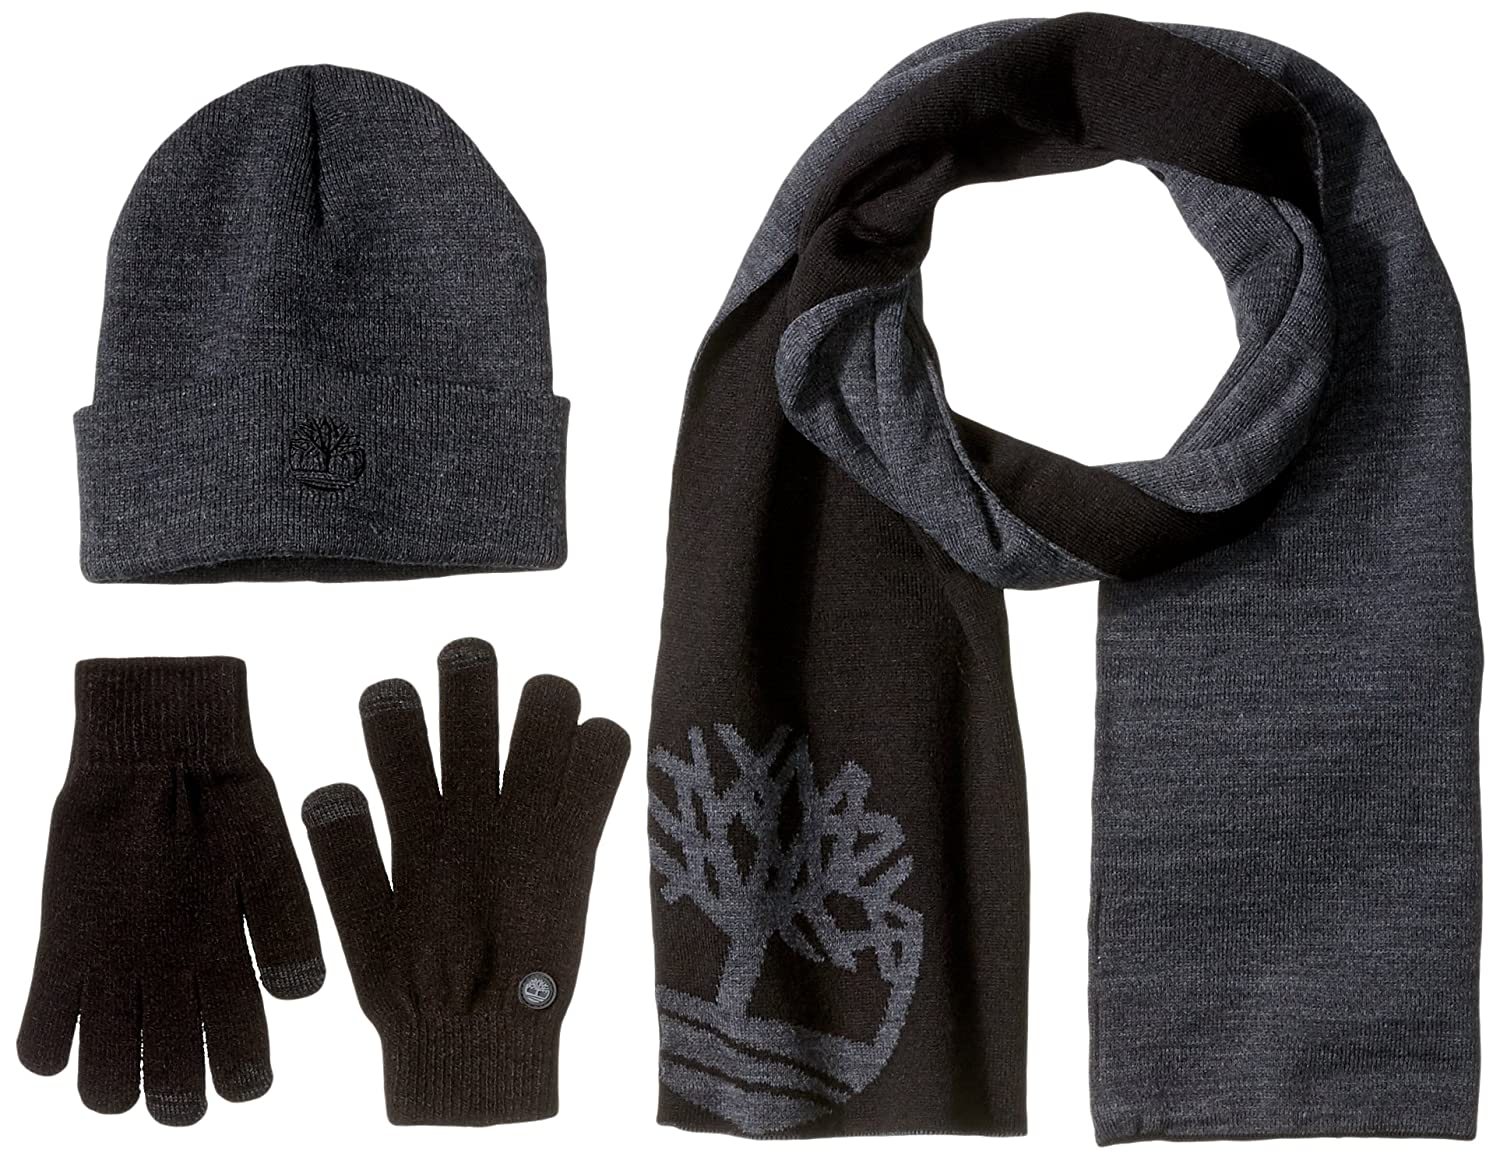 Timberland Mens Winter Hat Charcoal One Size TGFT3005 4f760b4beceb